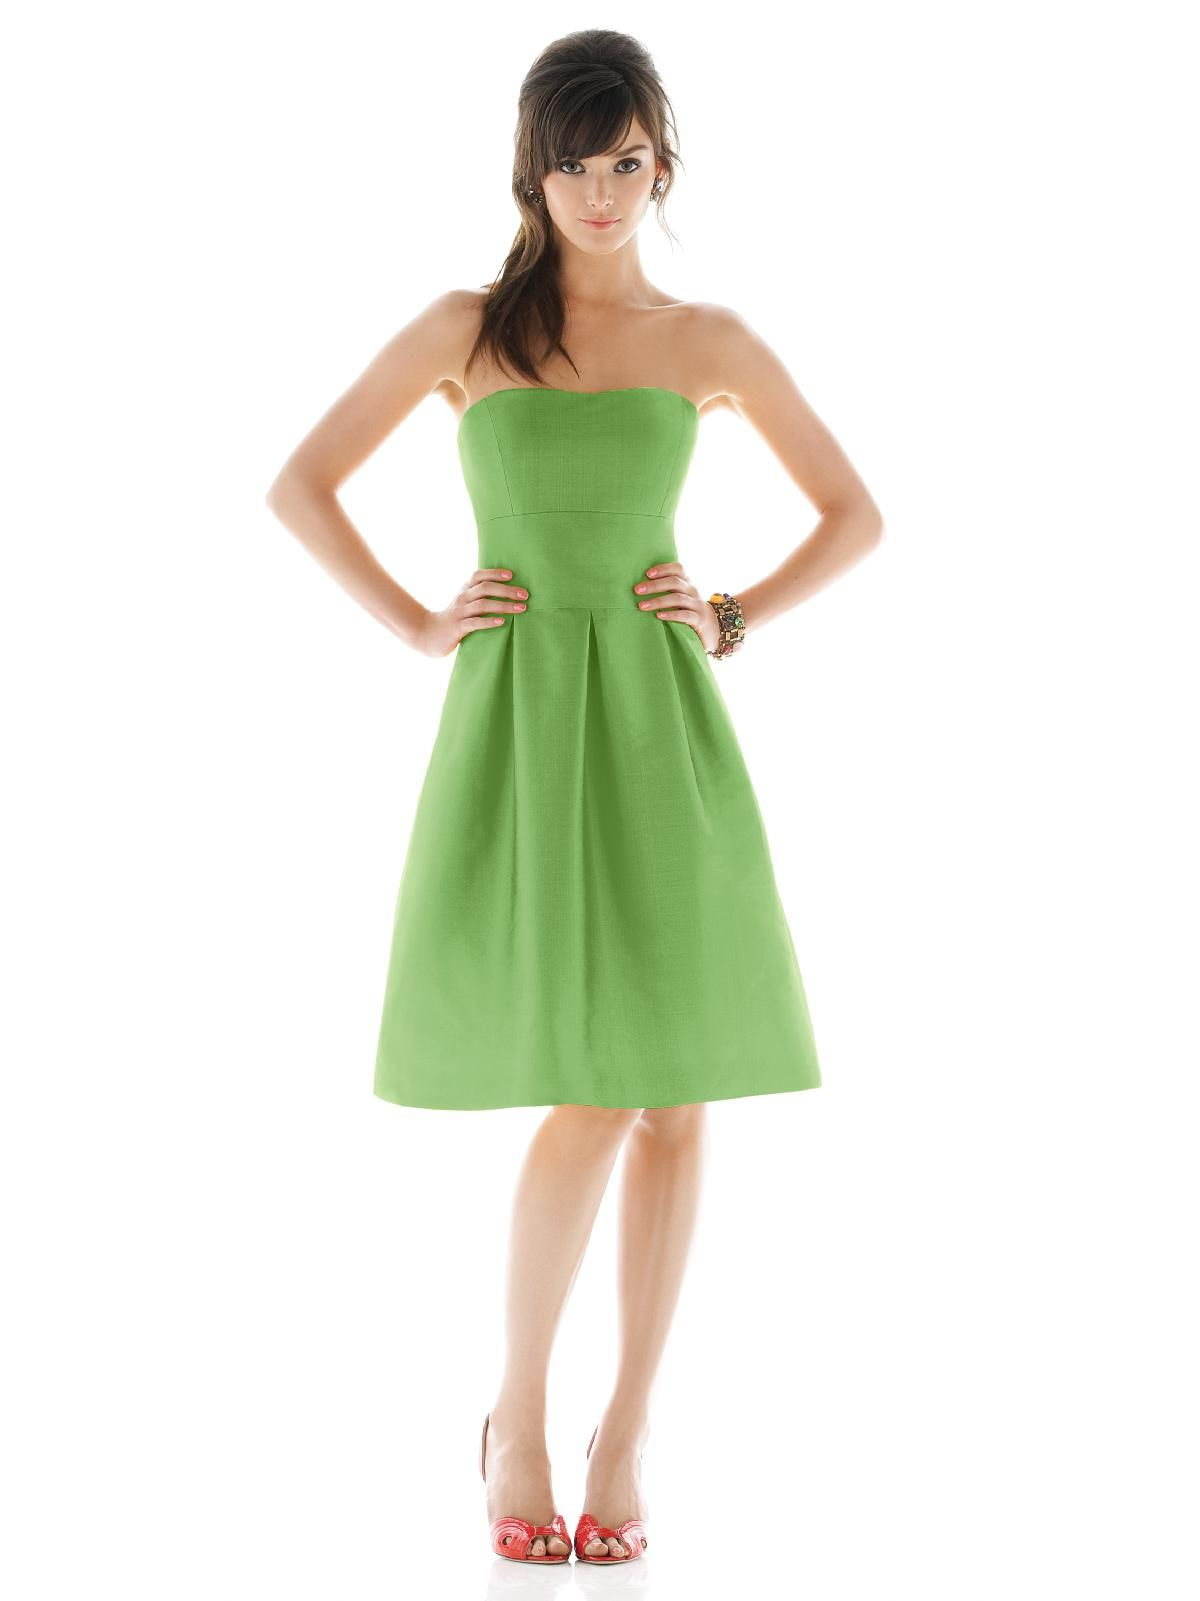 Appletini bridesmaid pinterest alfred sung bridesmaid the alfred sung bridesmaid collection offers fresh contemporary bridesmaid dresses while keeping your budget in mind ombrellifo Image collections